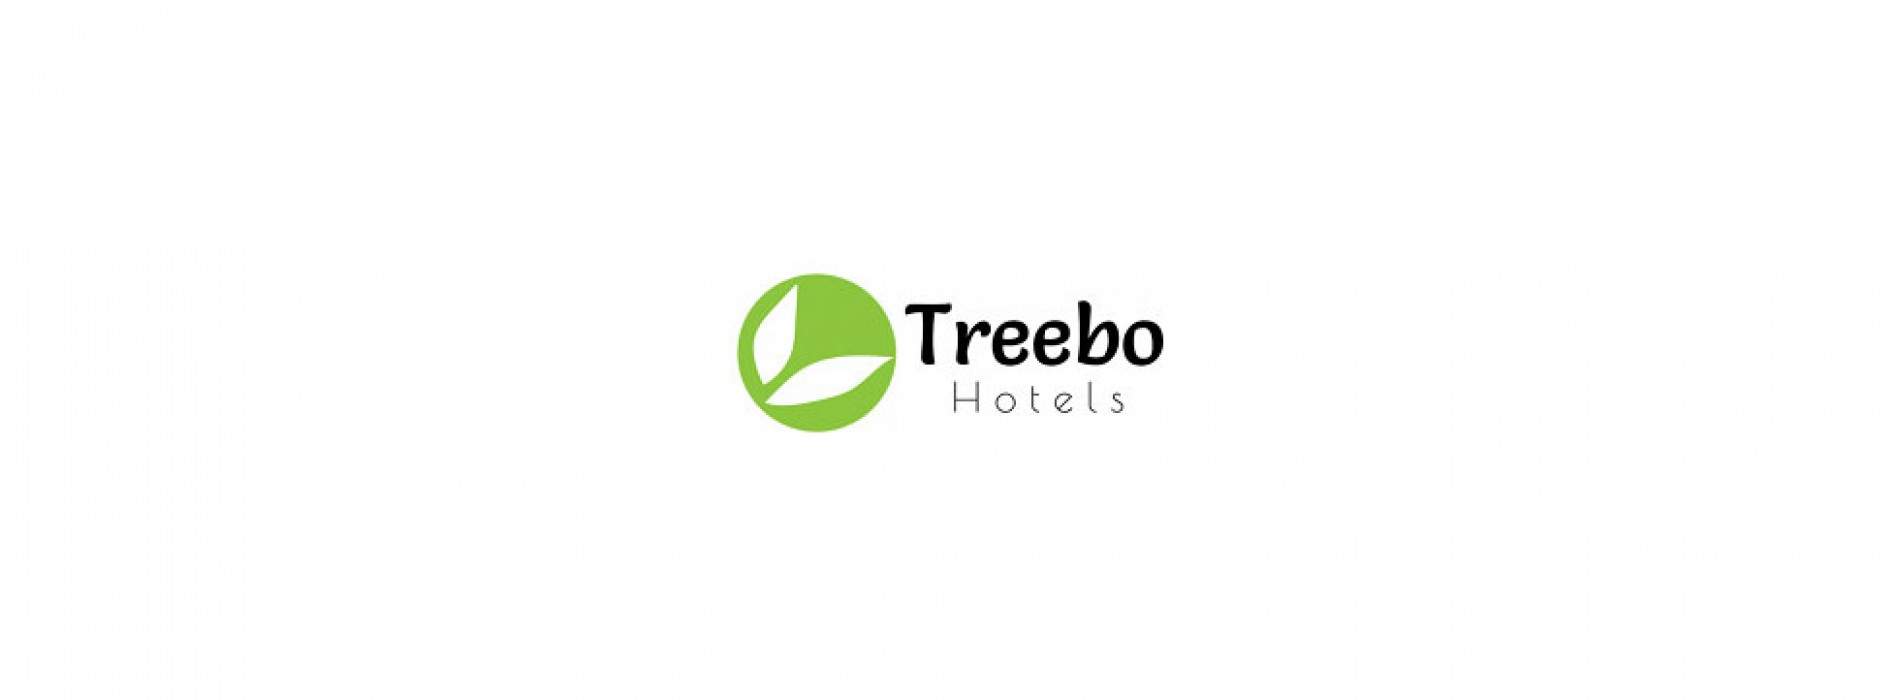 Treebo Hotels earns 2016 Tripadvisor Certificate of Excellence for 9 Properties